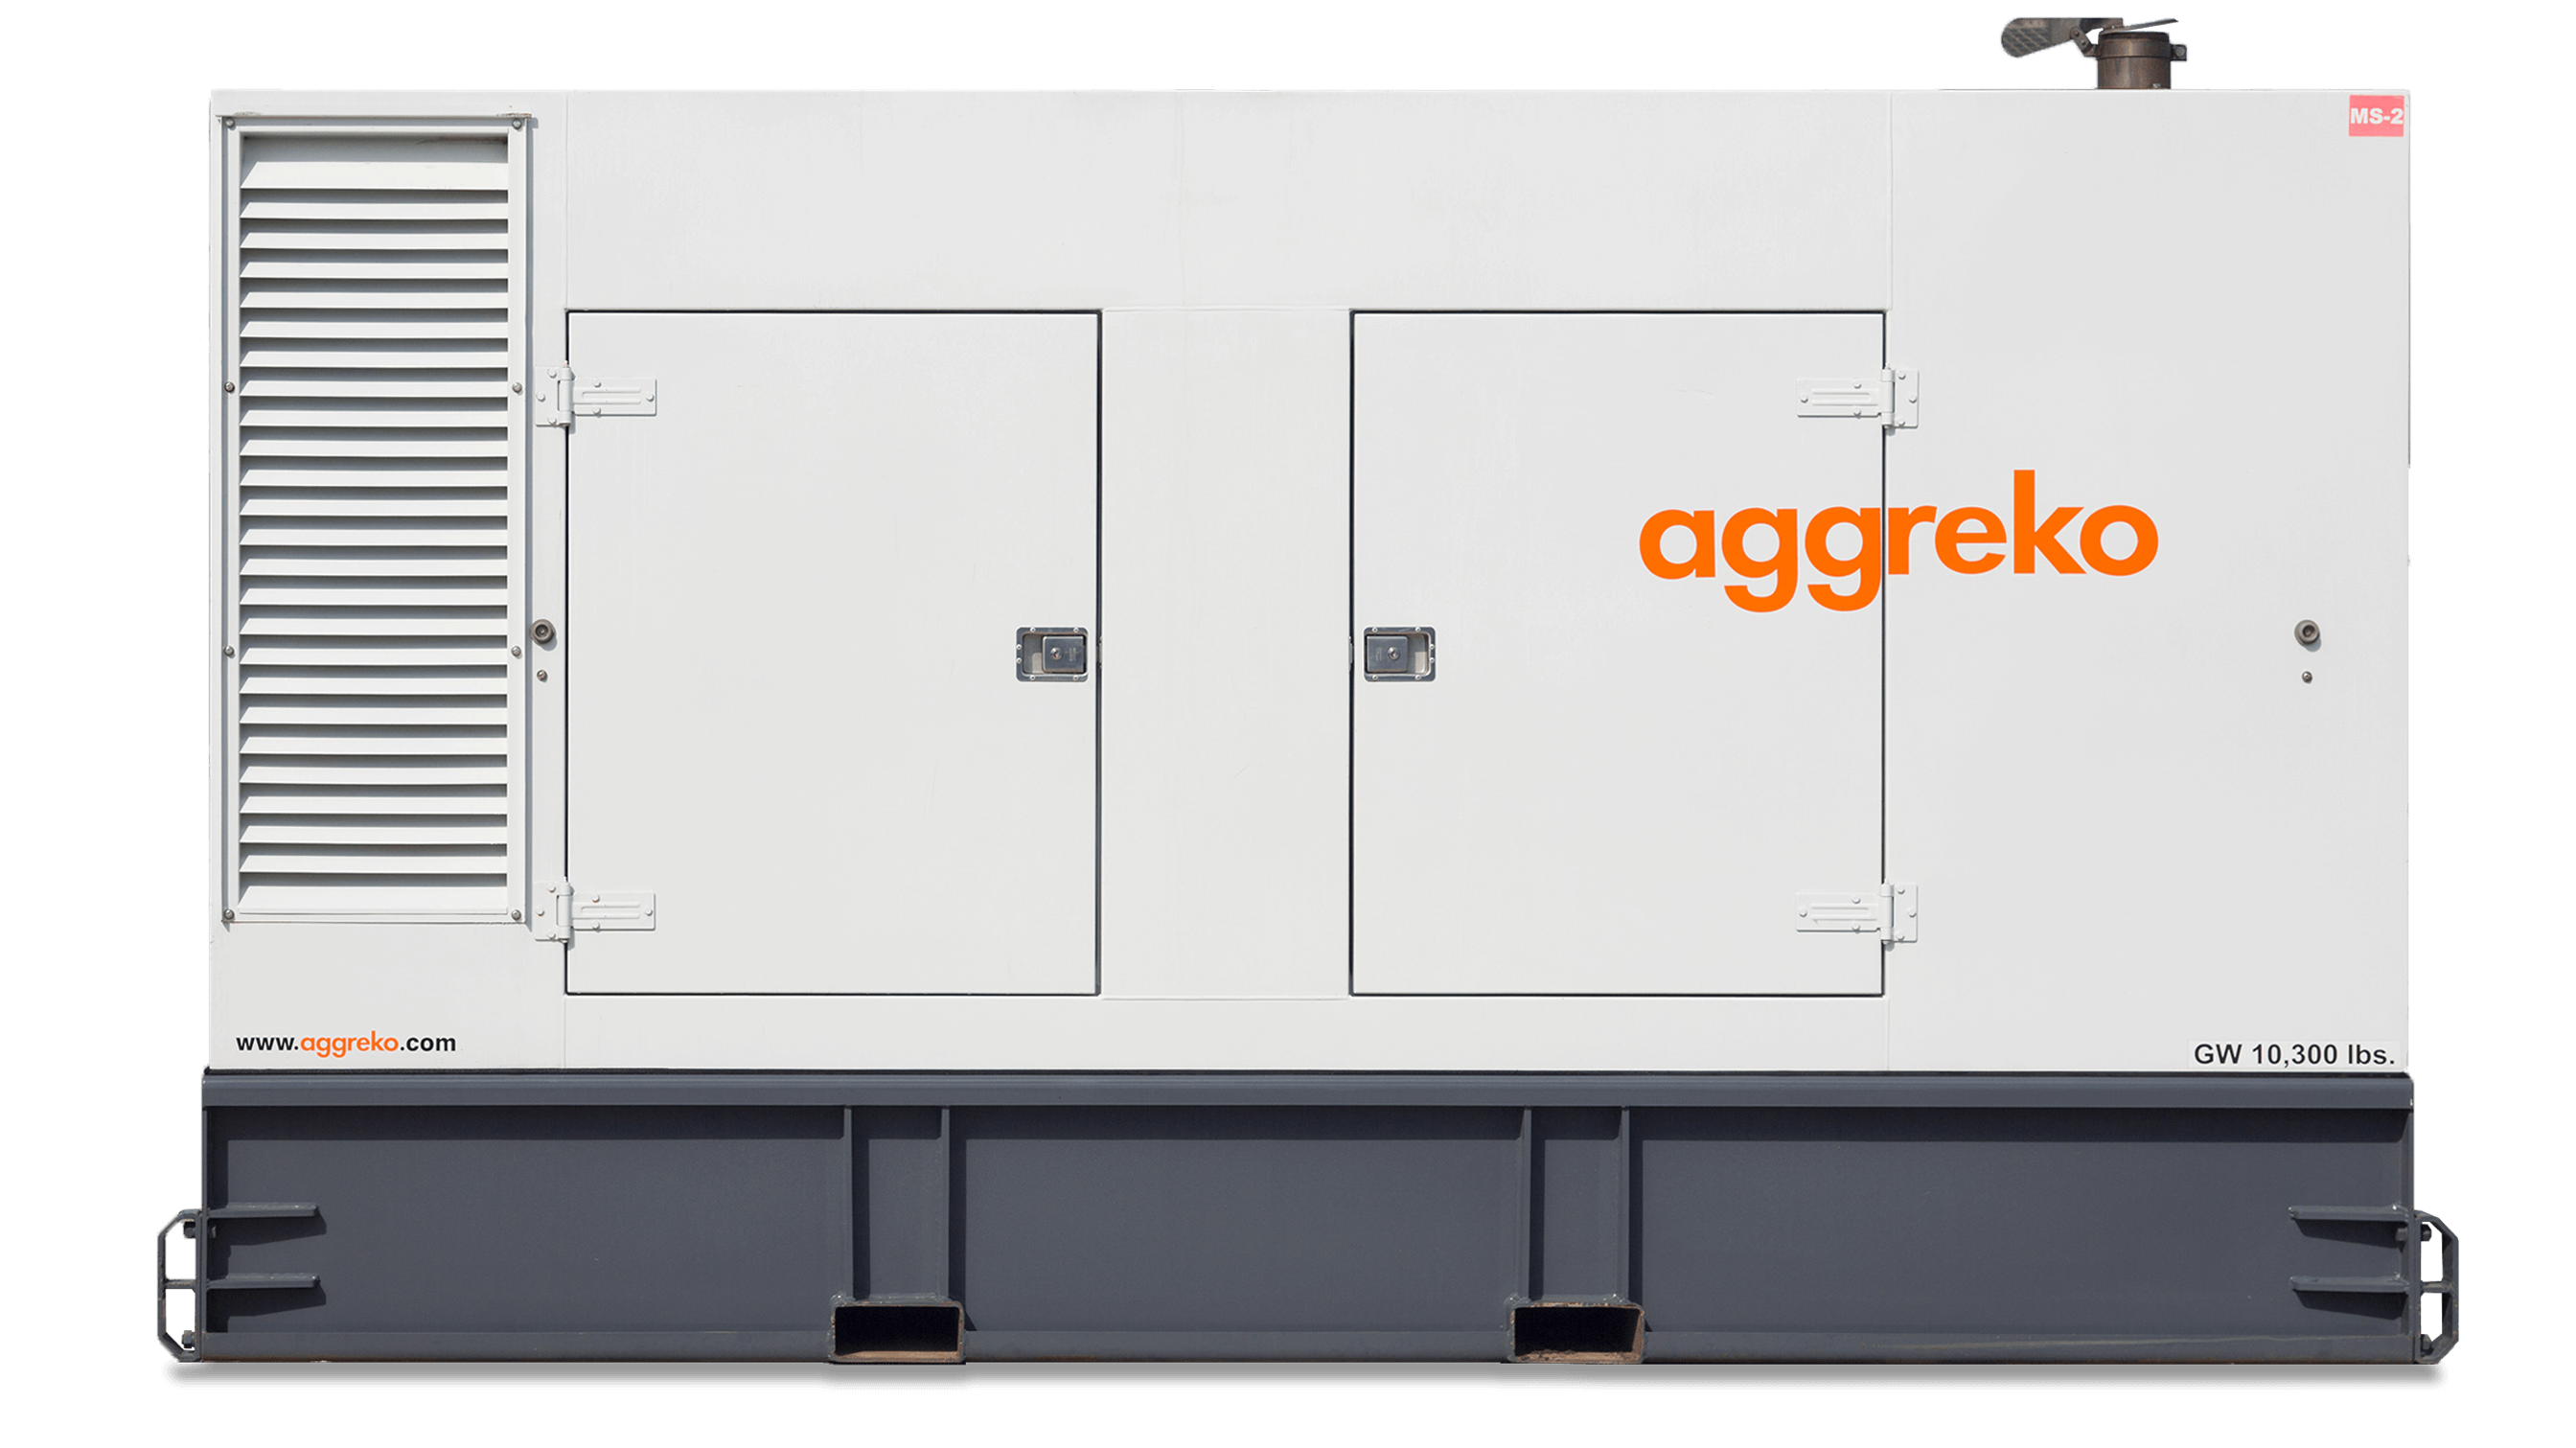 Aggreko Generator Wiring Diagram Free Download 6 Volt Schematic Generators For Hire Load Banks Transformers Fuel Tanks And More